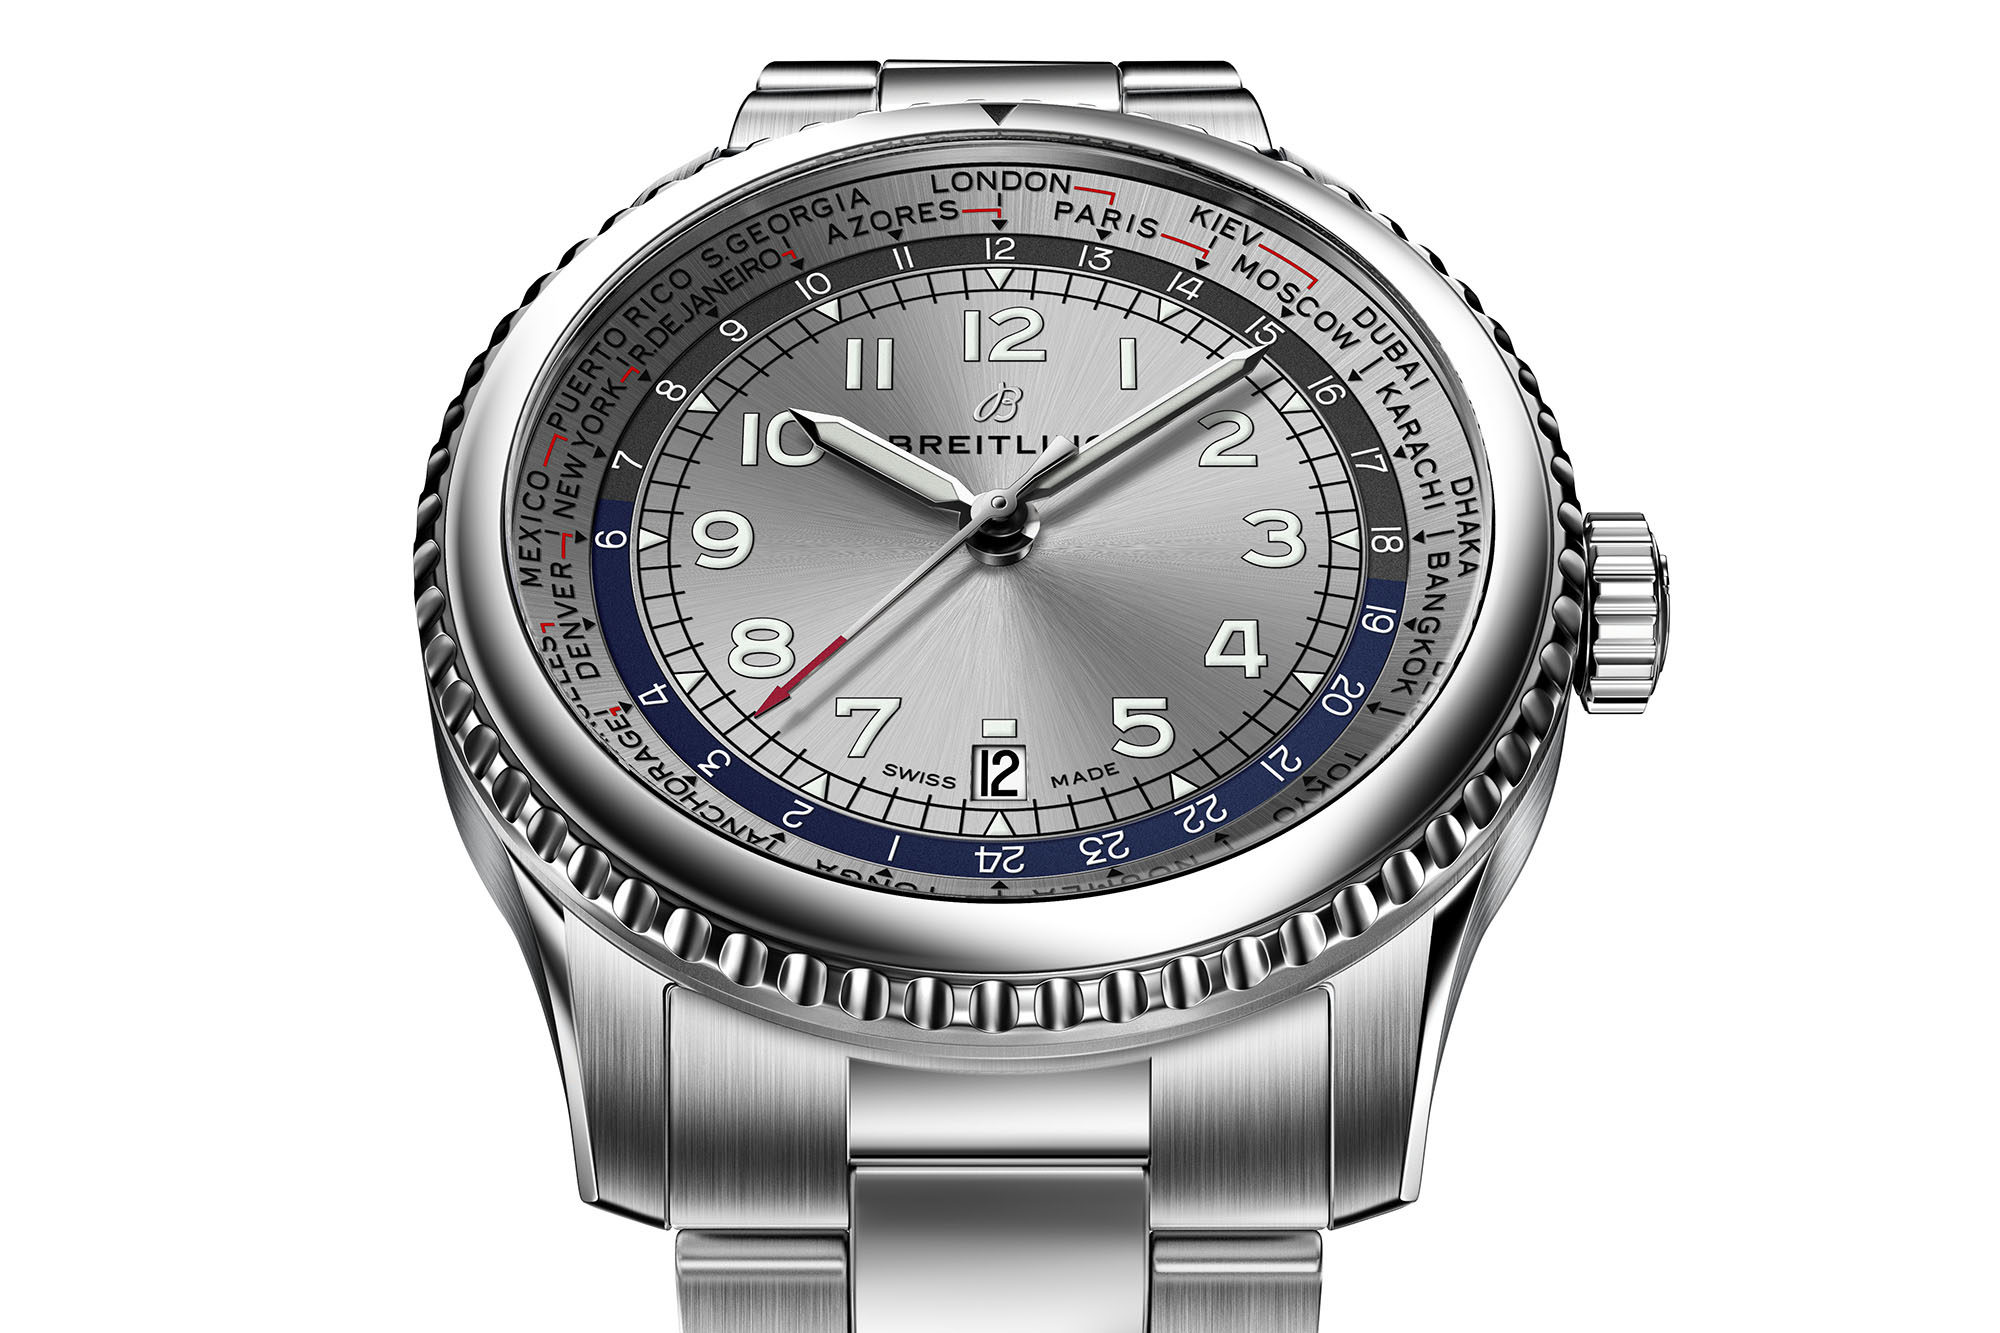 Breitling Navitimer 8 Unitime With Silver Dial And Stainless Steel Bracelet